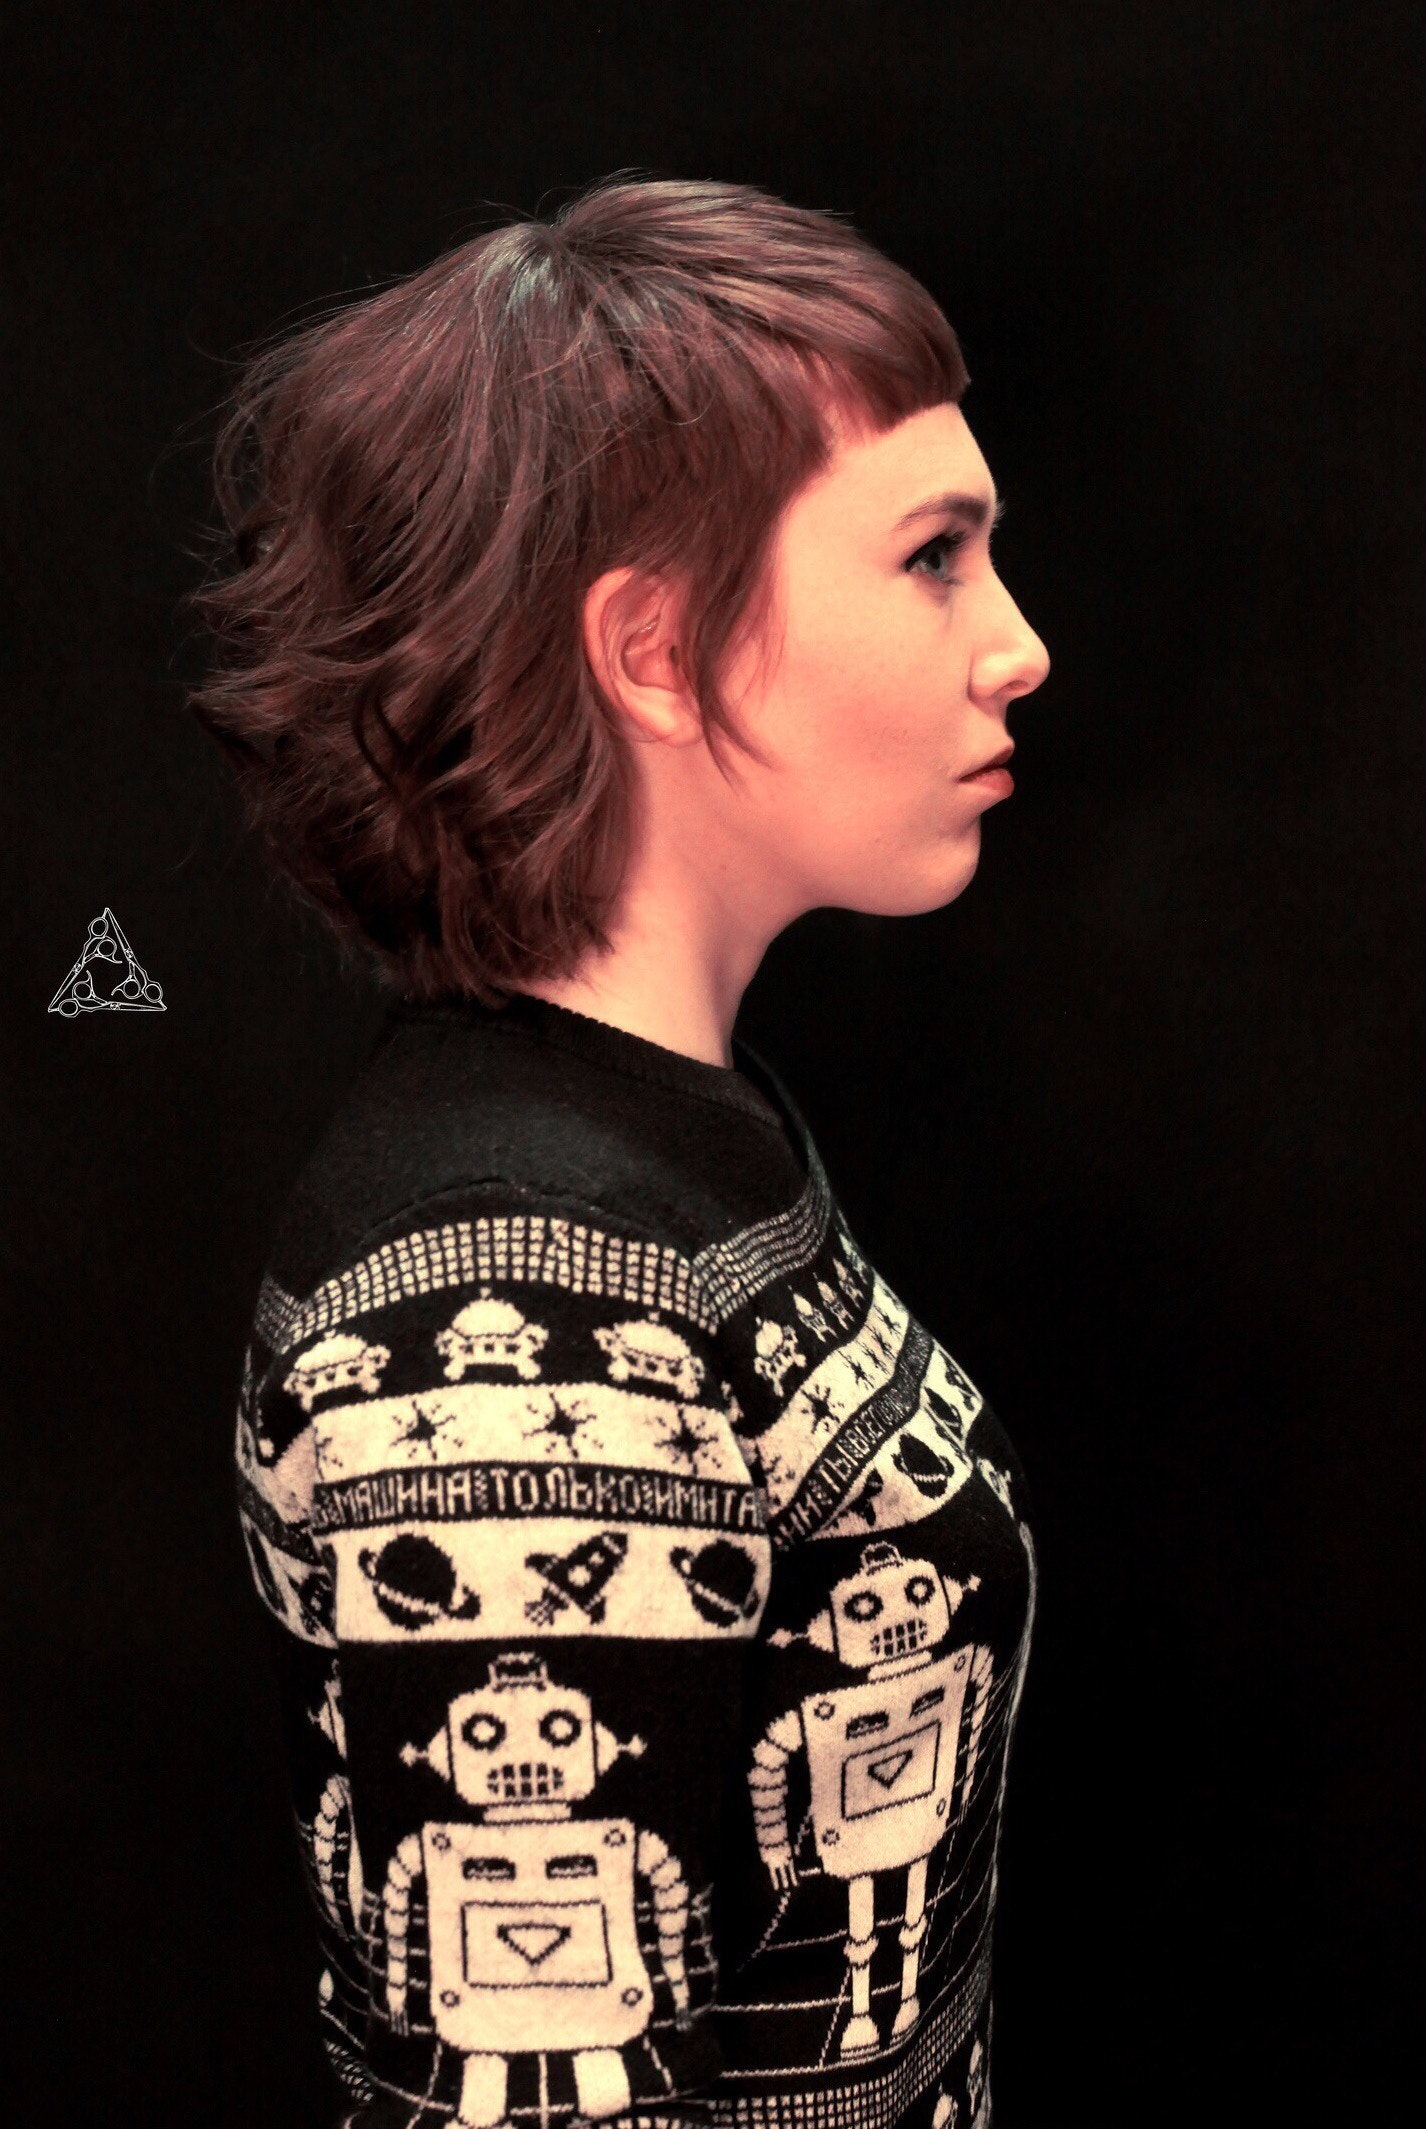 Haircut And Photo By Me Hairbrained